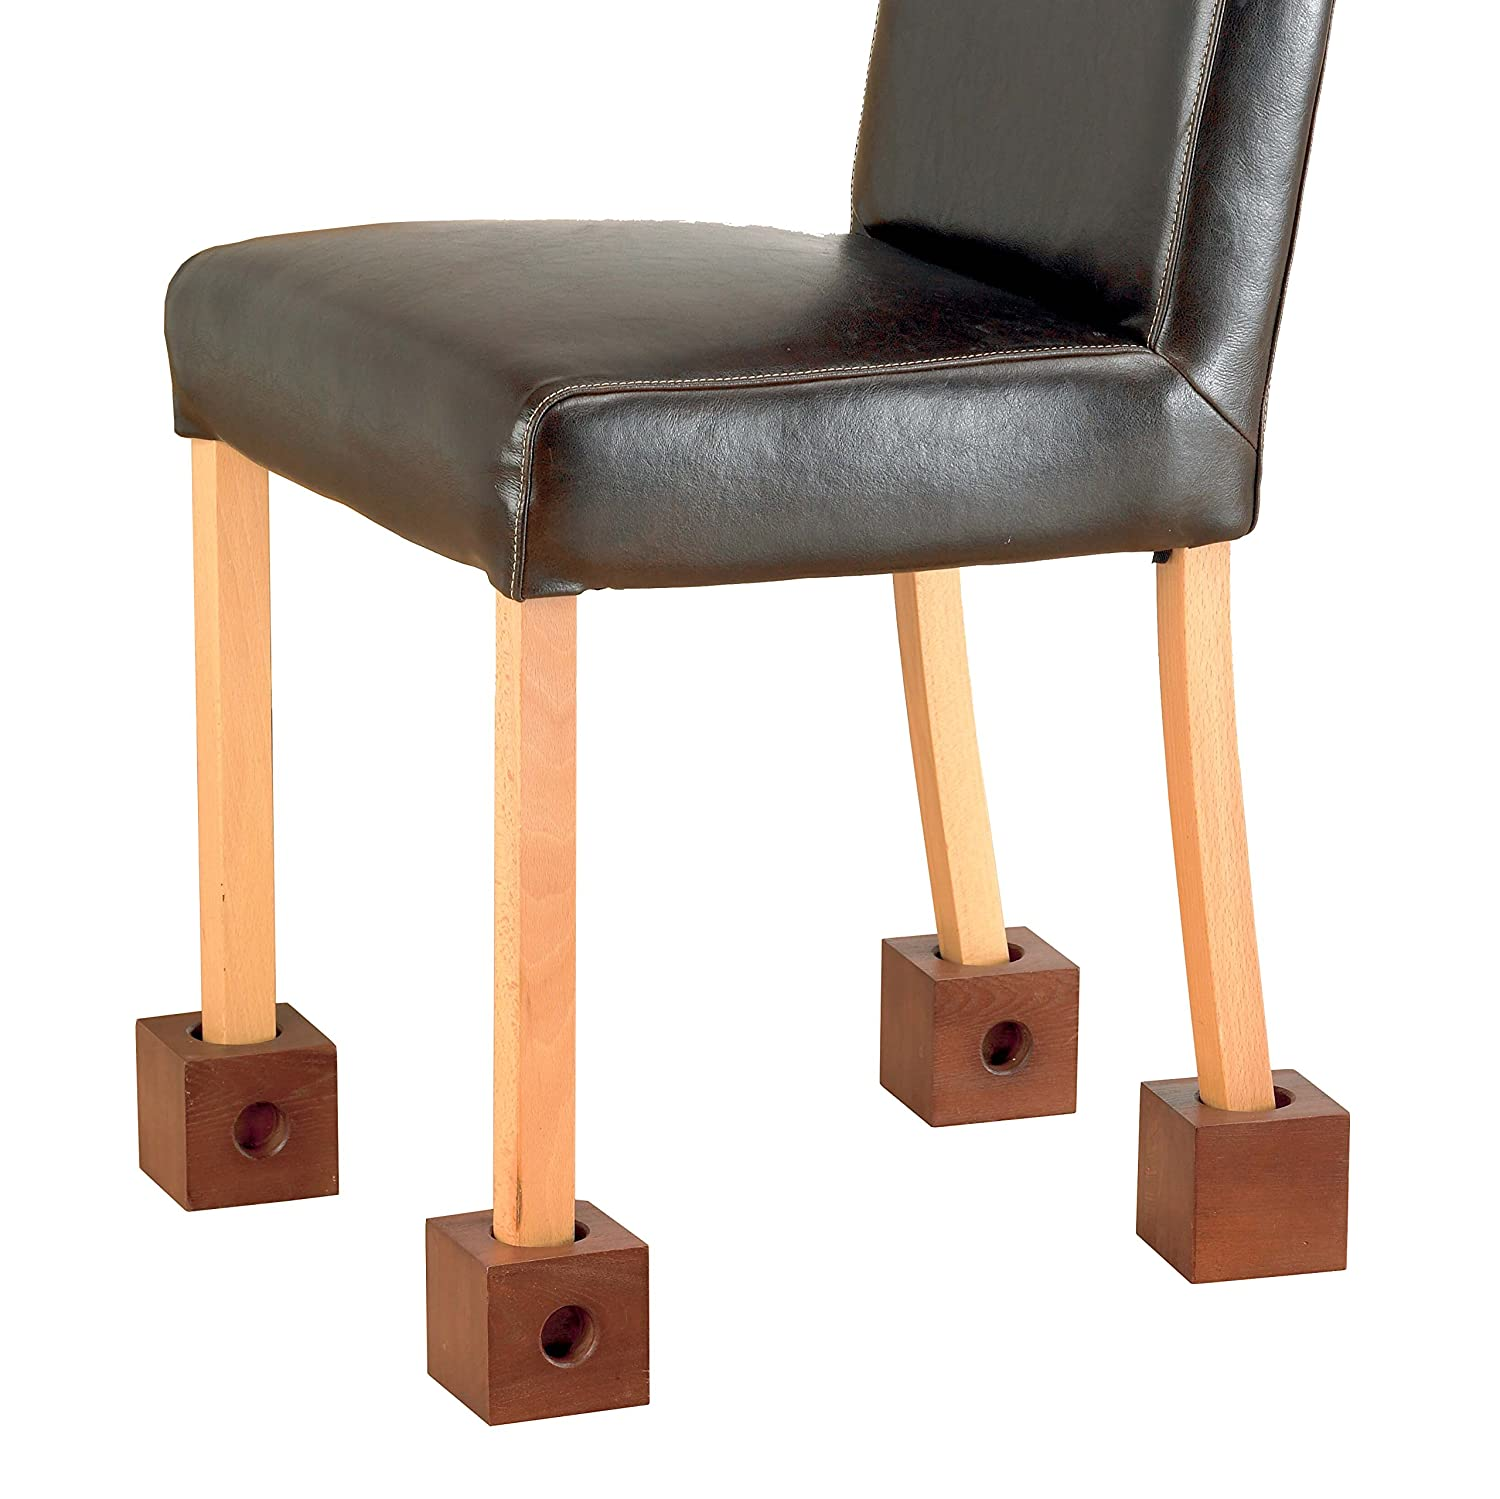 Patterson Medical Wooden Chair Raisers Eligible for VAT relief in